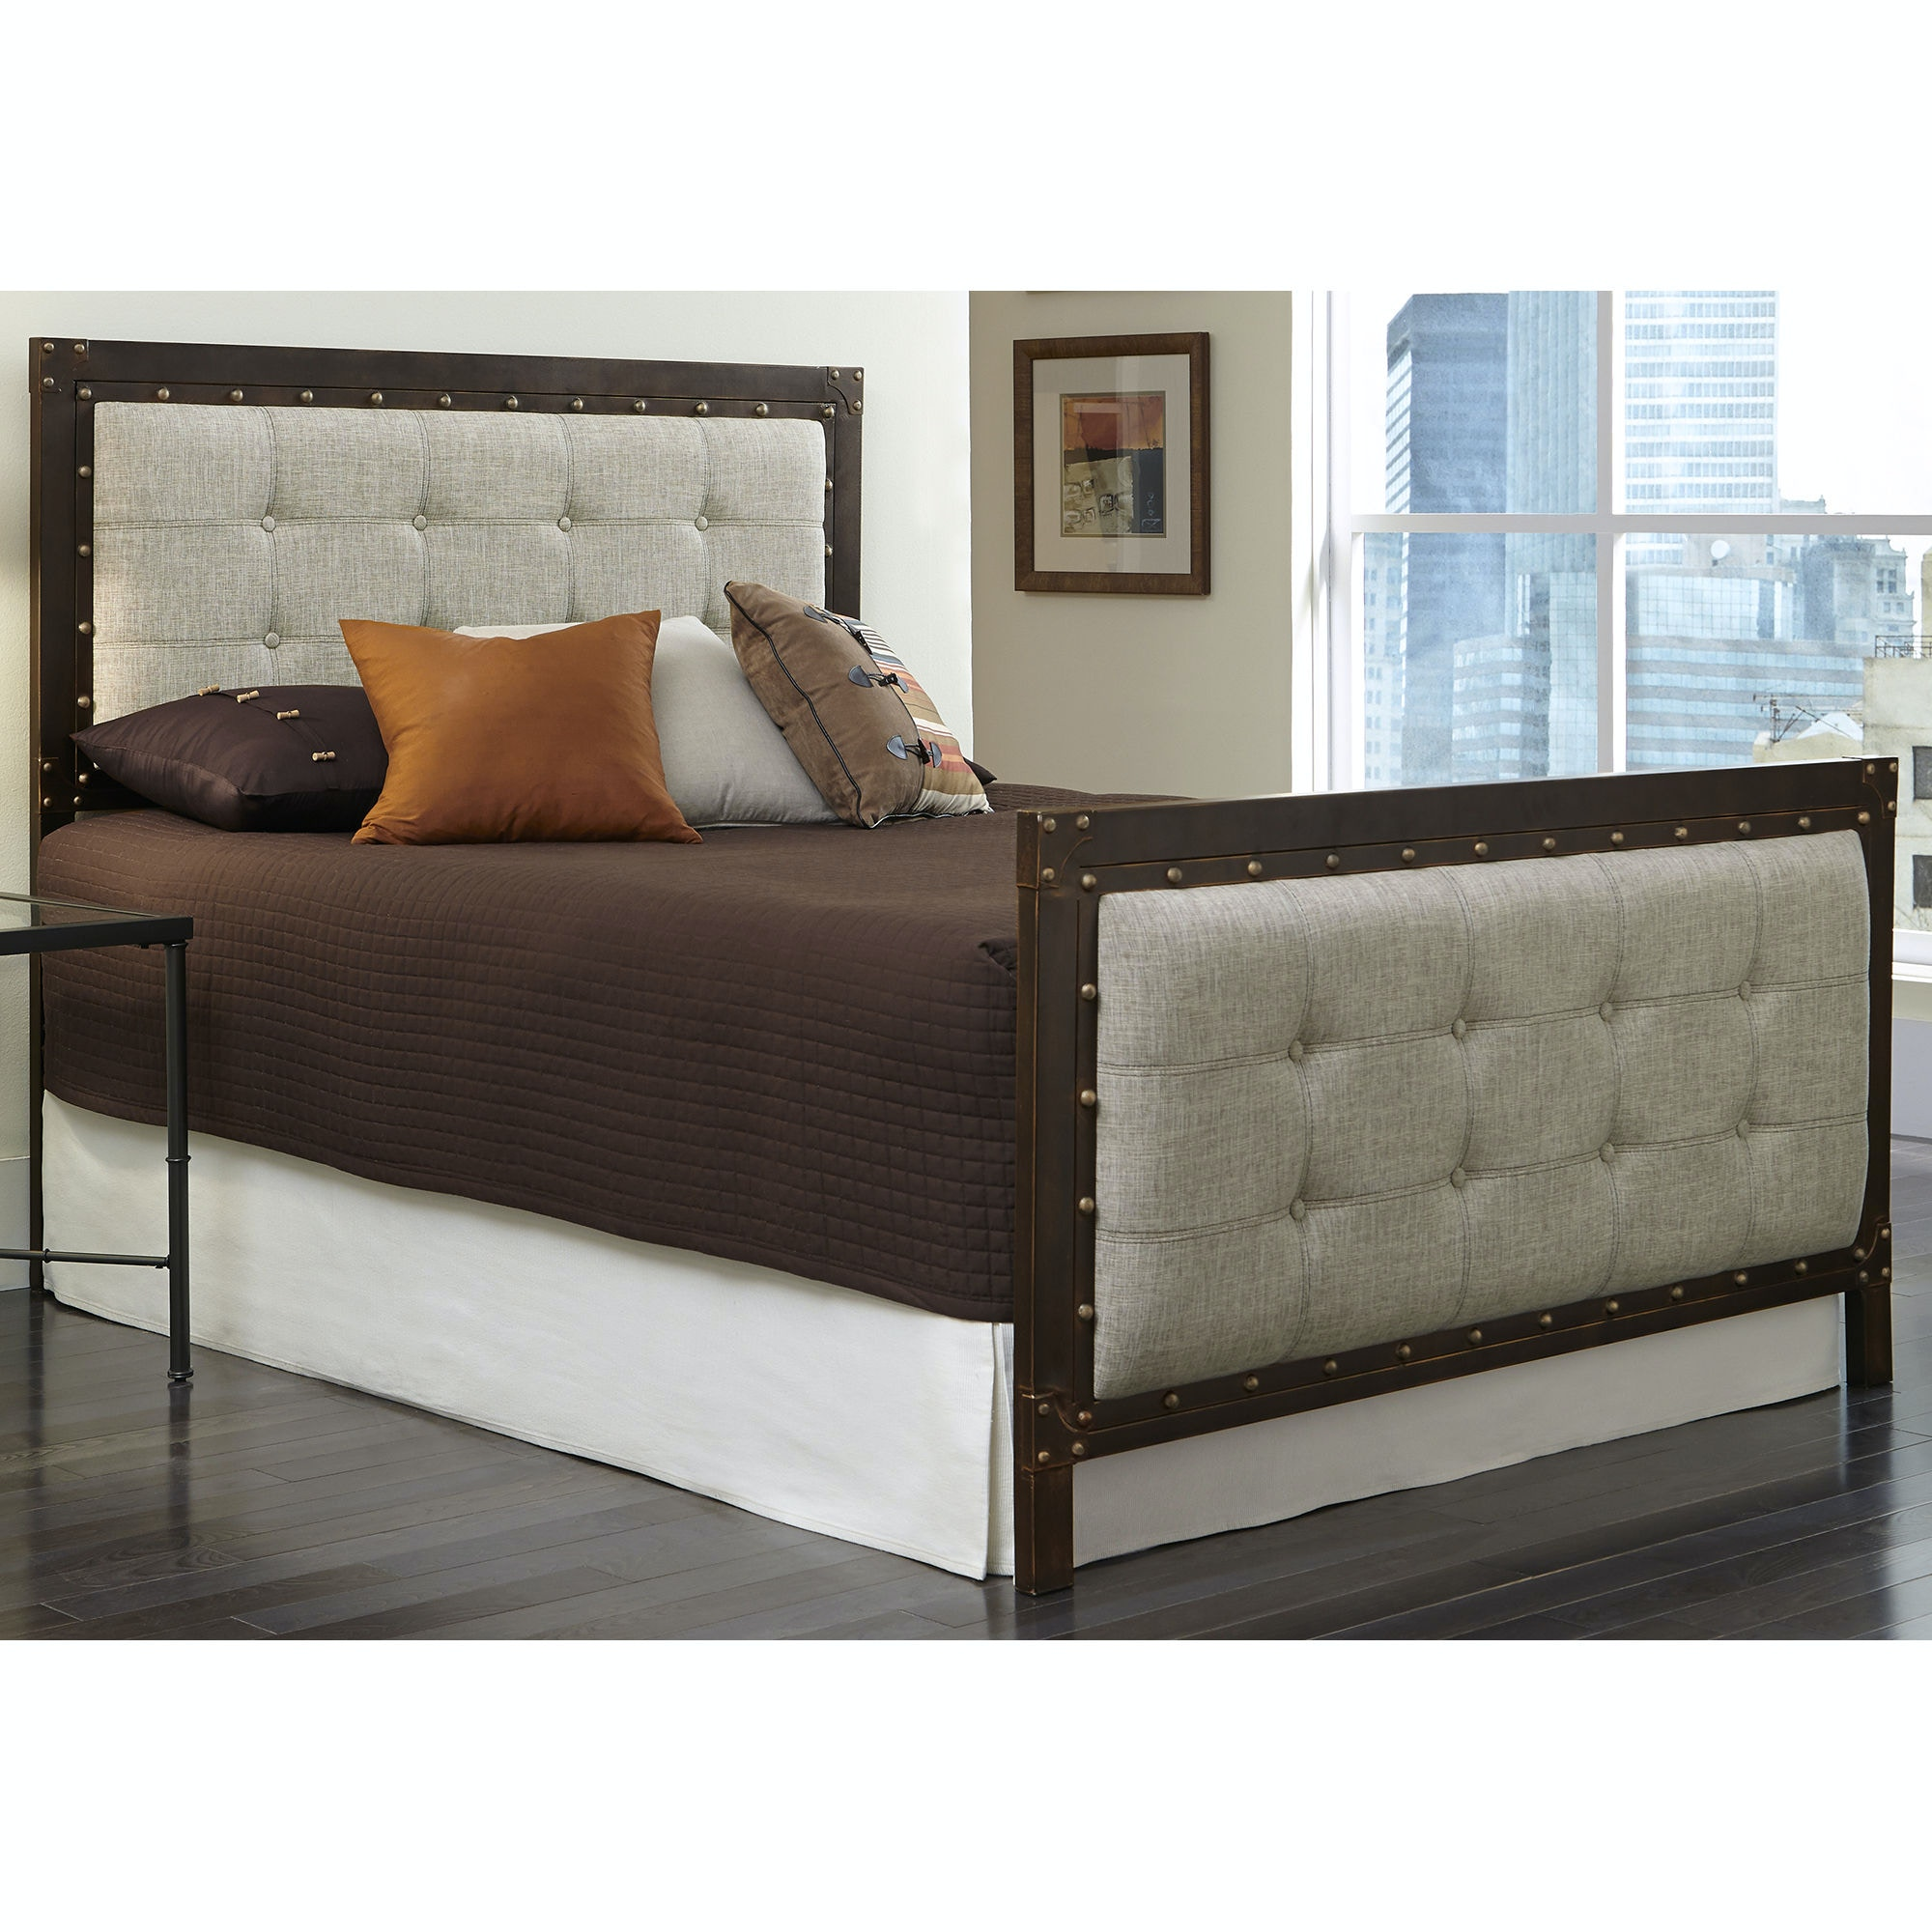 Fashion Bed Group Gotham Complete Bed With Dark Latte Upholstered Metal  Panels And Antique Industrial Studs